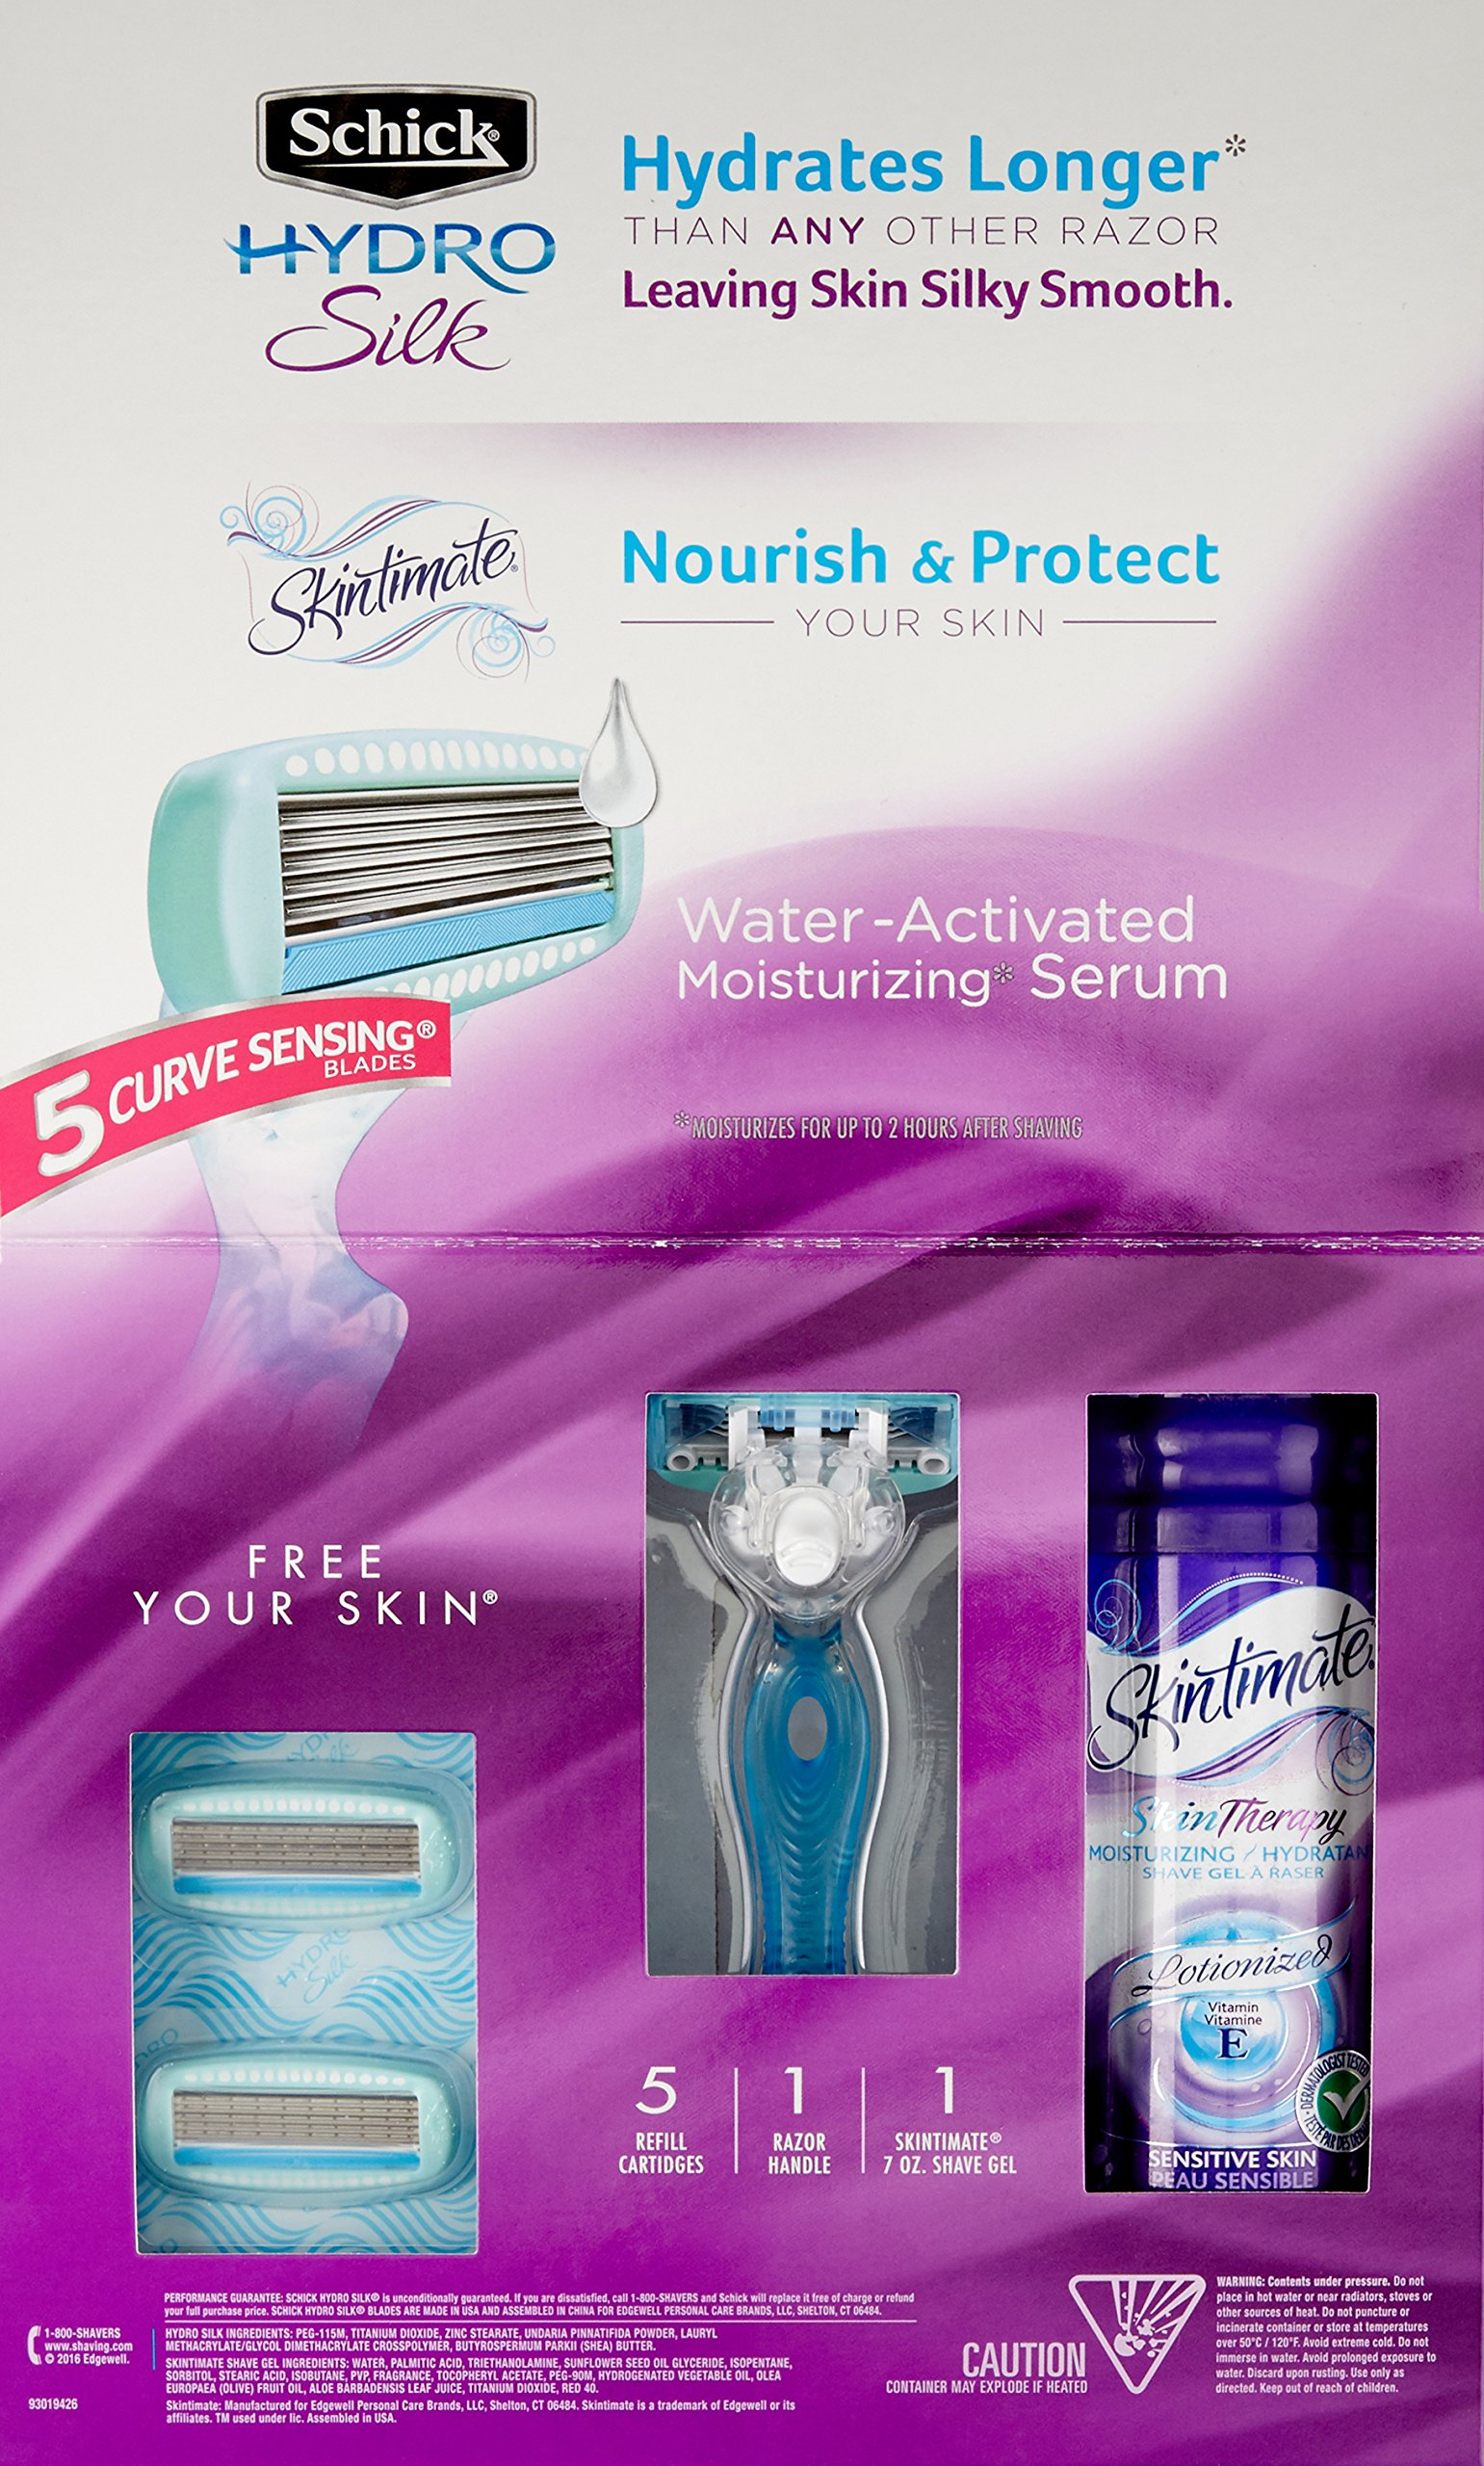 Schick Hydro Silk Shaving Starter Gift Set for Women with Shower Ready Razor Refill Blades and Skintimate Skin Therapy Shave Gel for Sensitive Skin by Schick (Image #6)